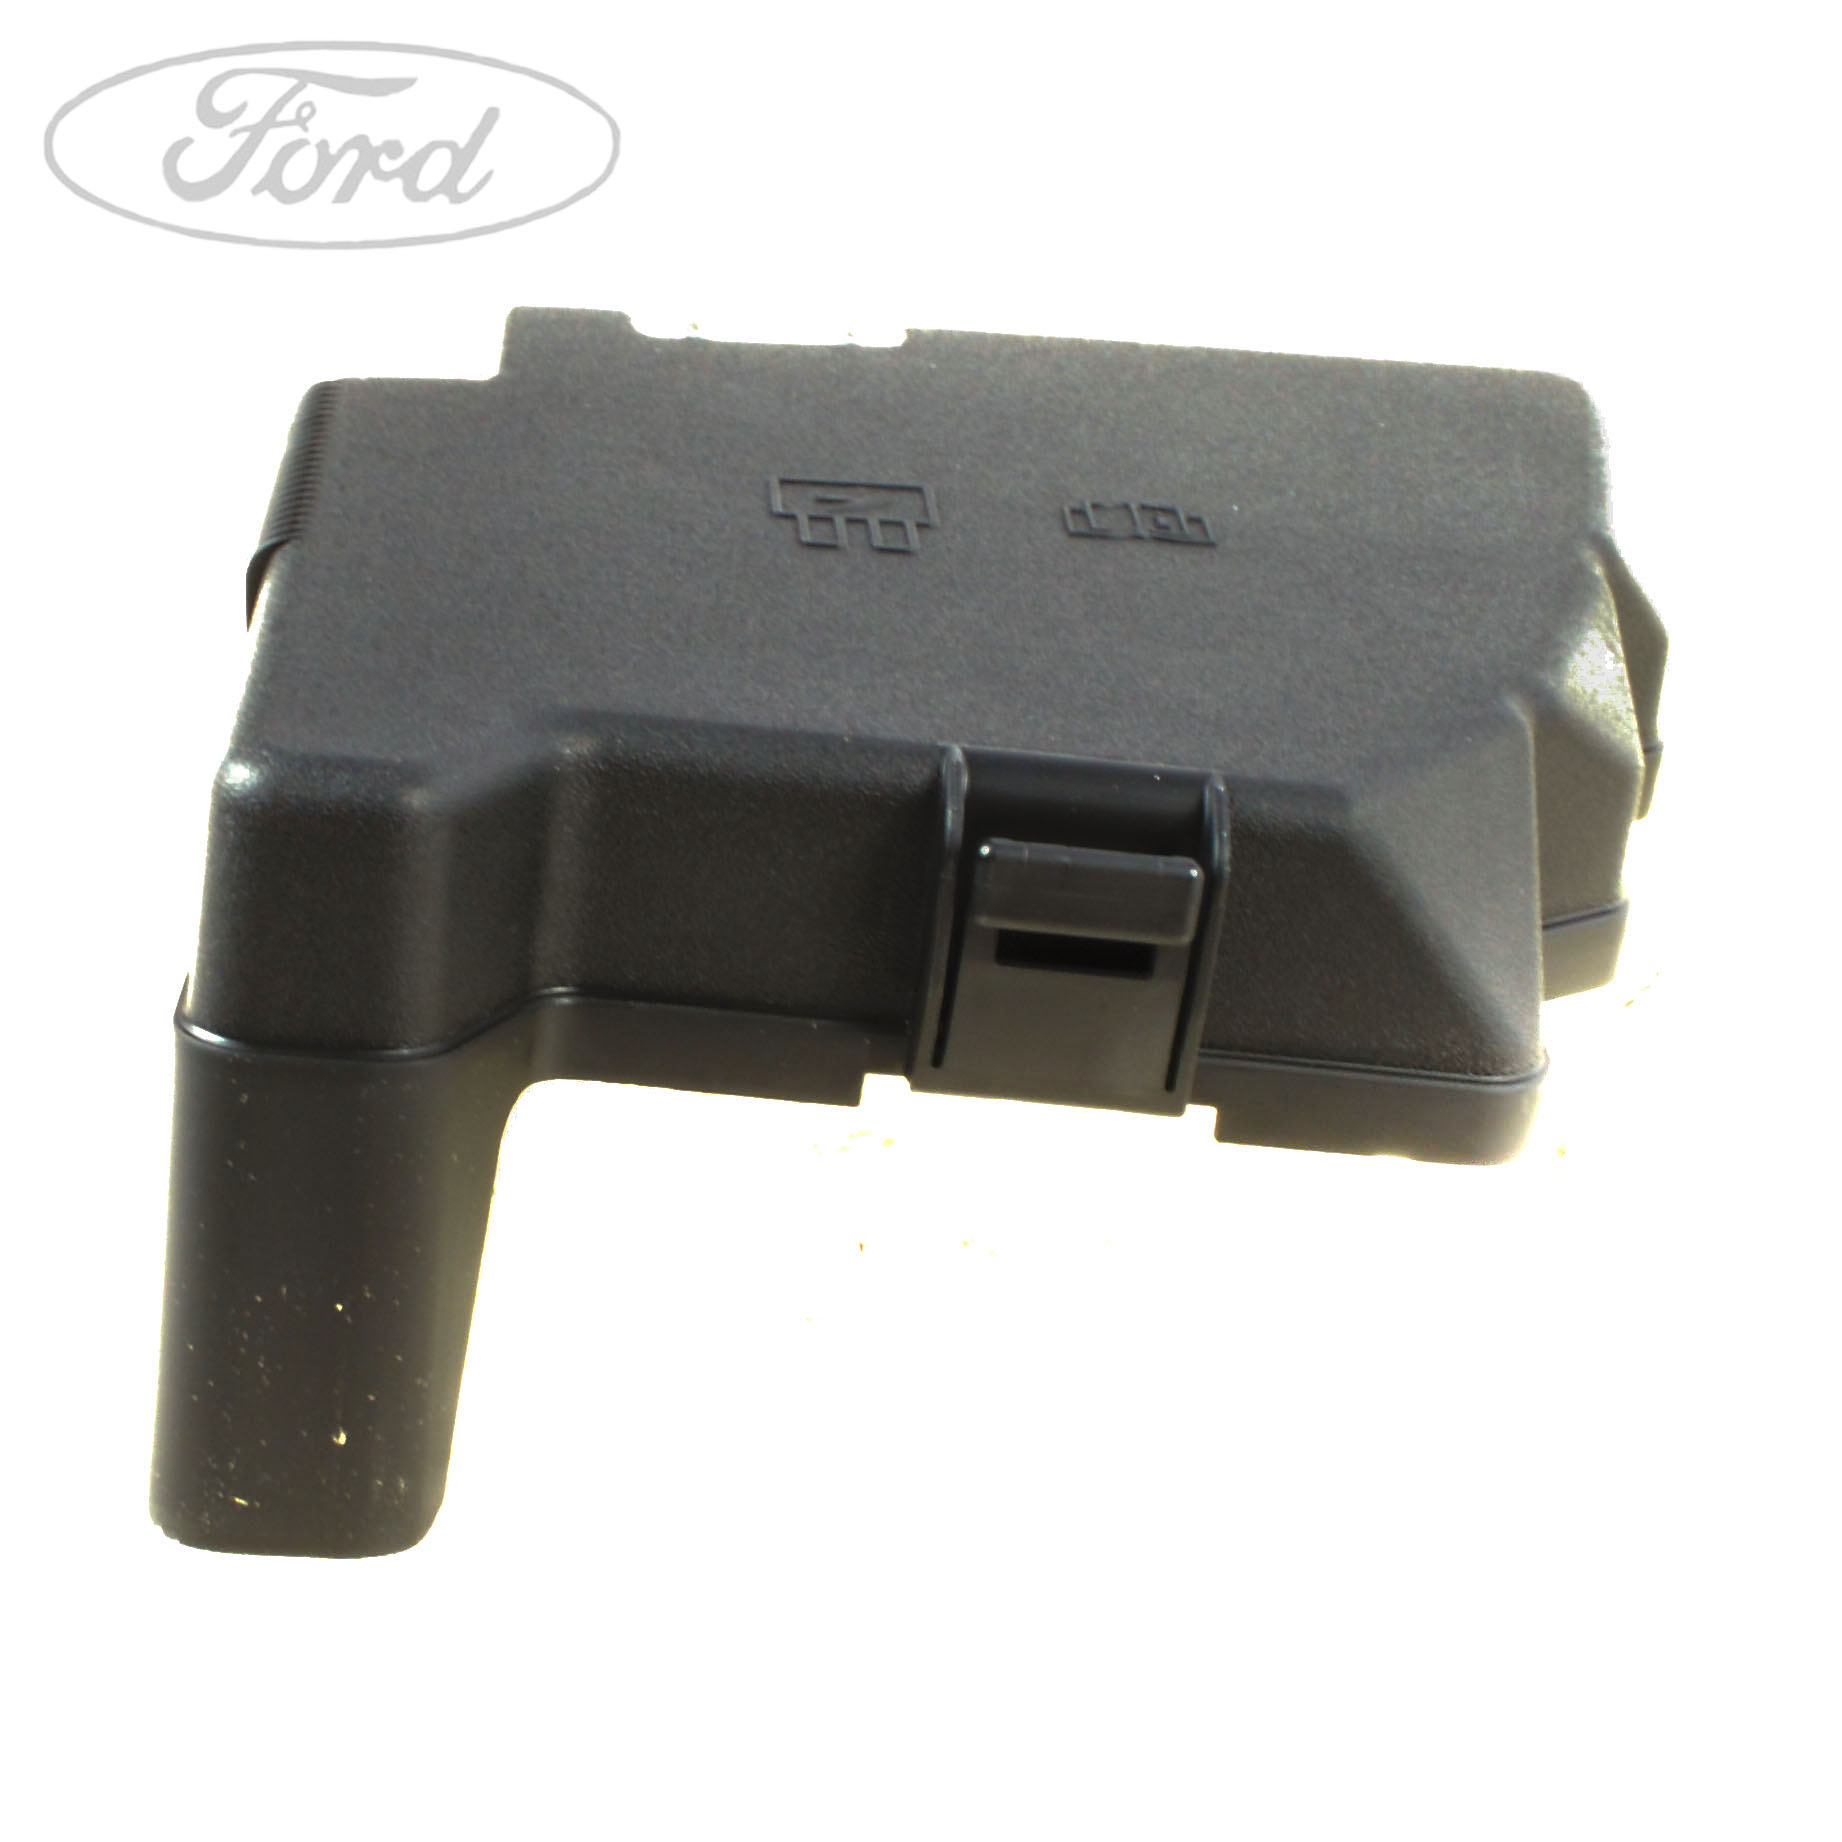 genuine ford fiesta mk7 fuse box cover 1515045 genuine ford fiesta mk7 fuse box cover 1515045